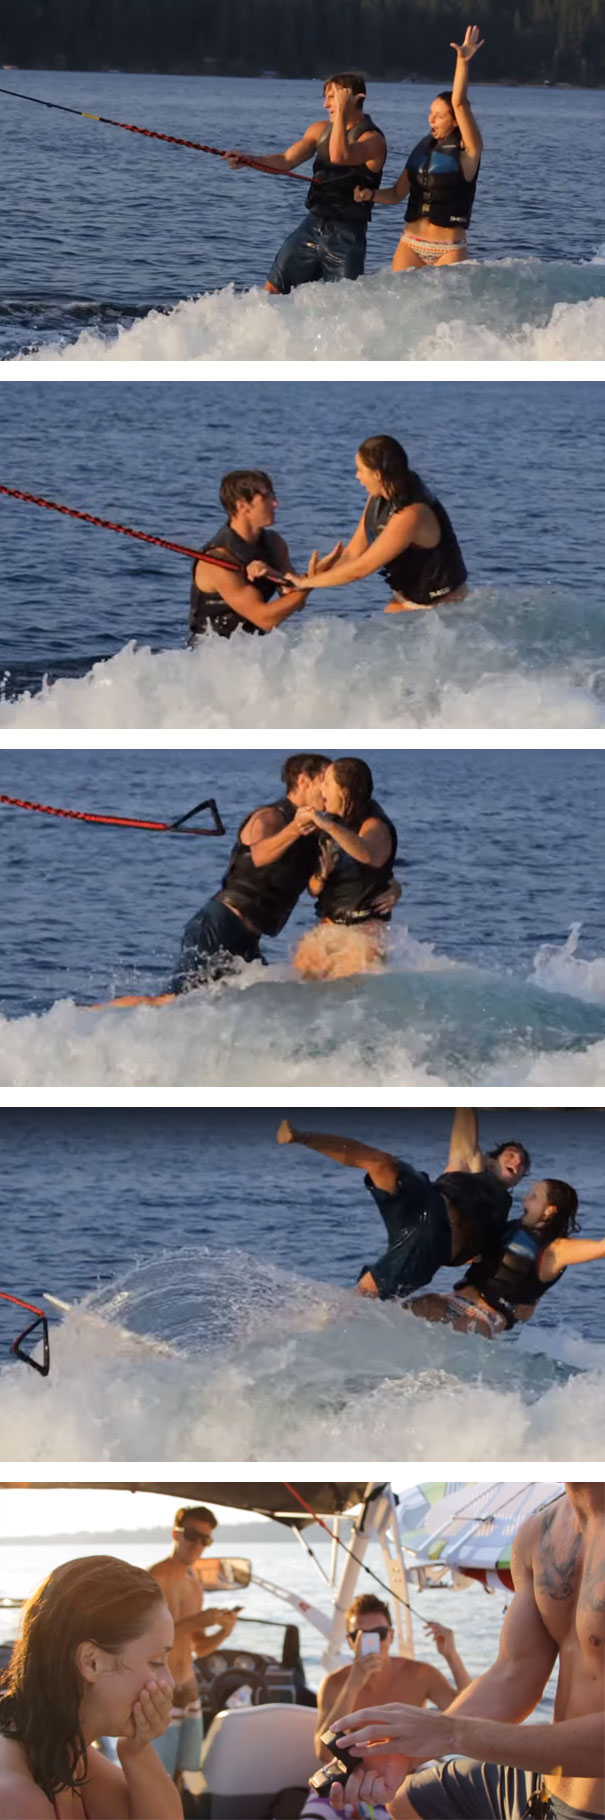 My Friend Proposed While Tandem Wakesurfing. She Totally Didn't Expect That